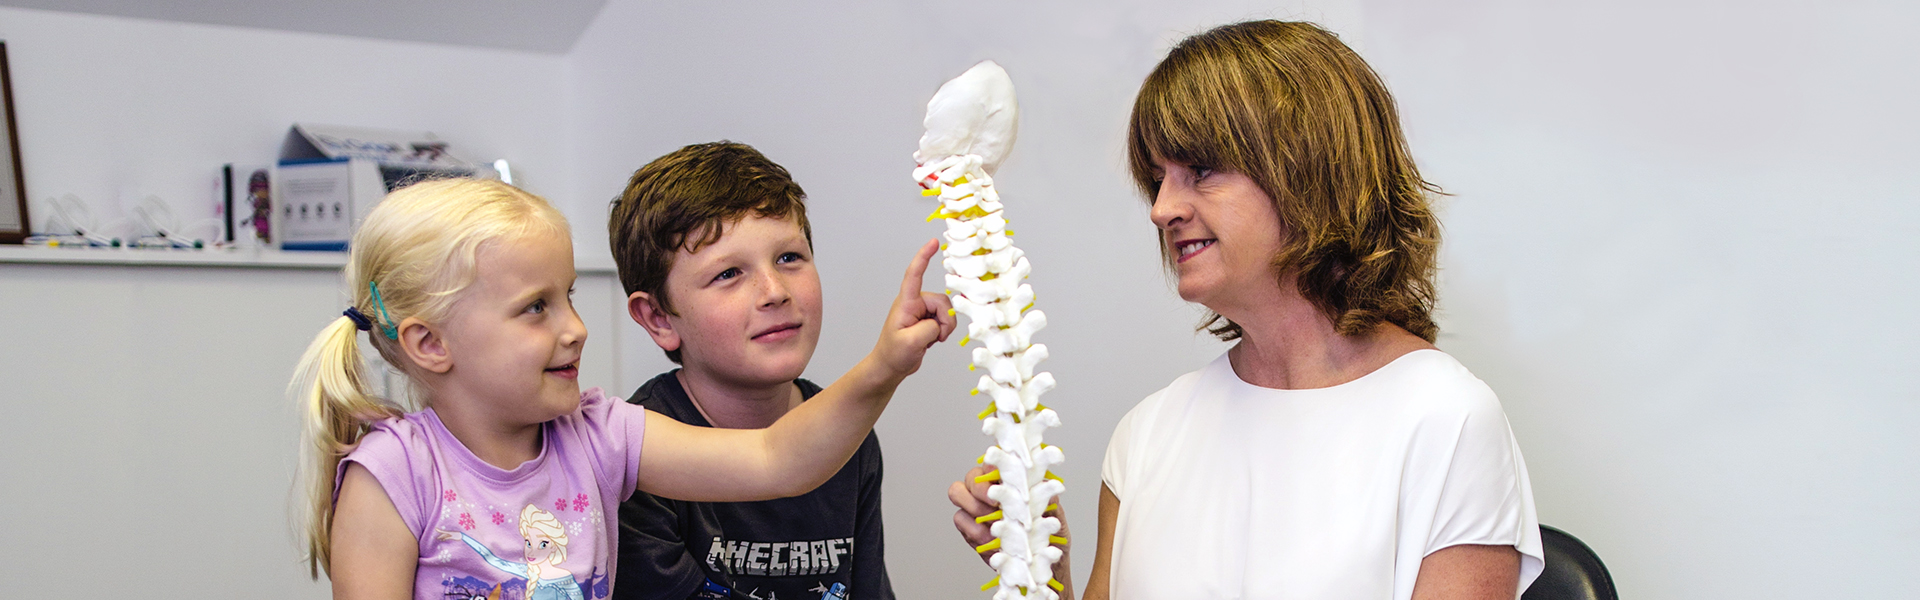 Safer Care Victoria Review of Chiropractic Care for Children